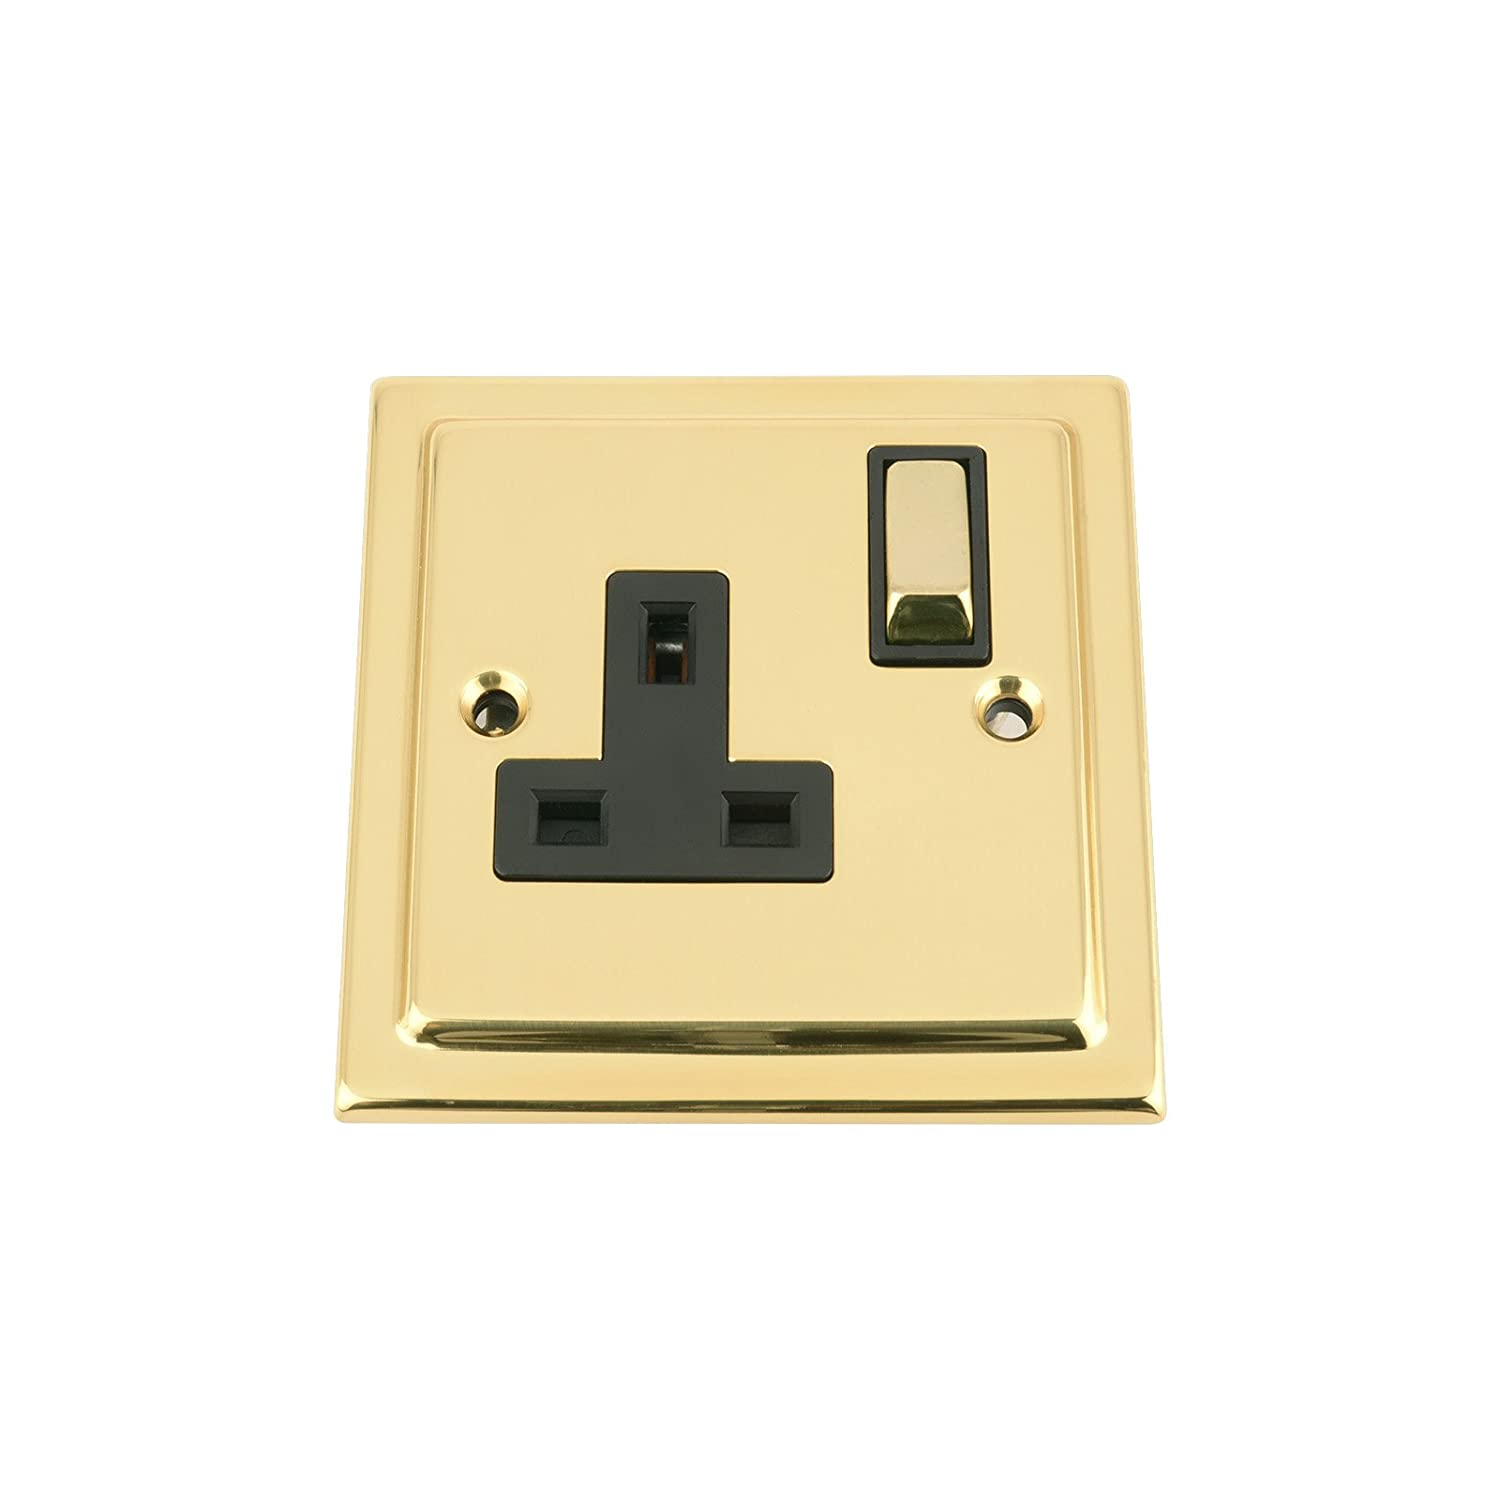 A5 Single Plug Socket 1 Gang 13A - Polished Brass - Victorian - Black Insert - Metal Rocker Switch A5 Products